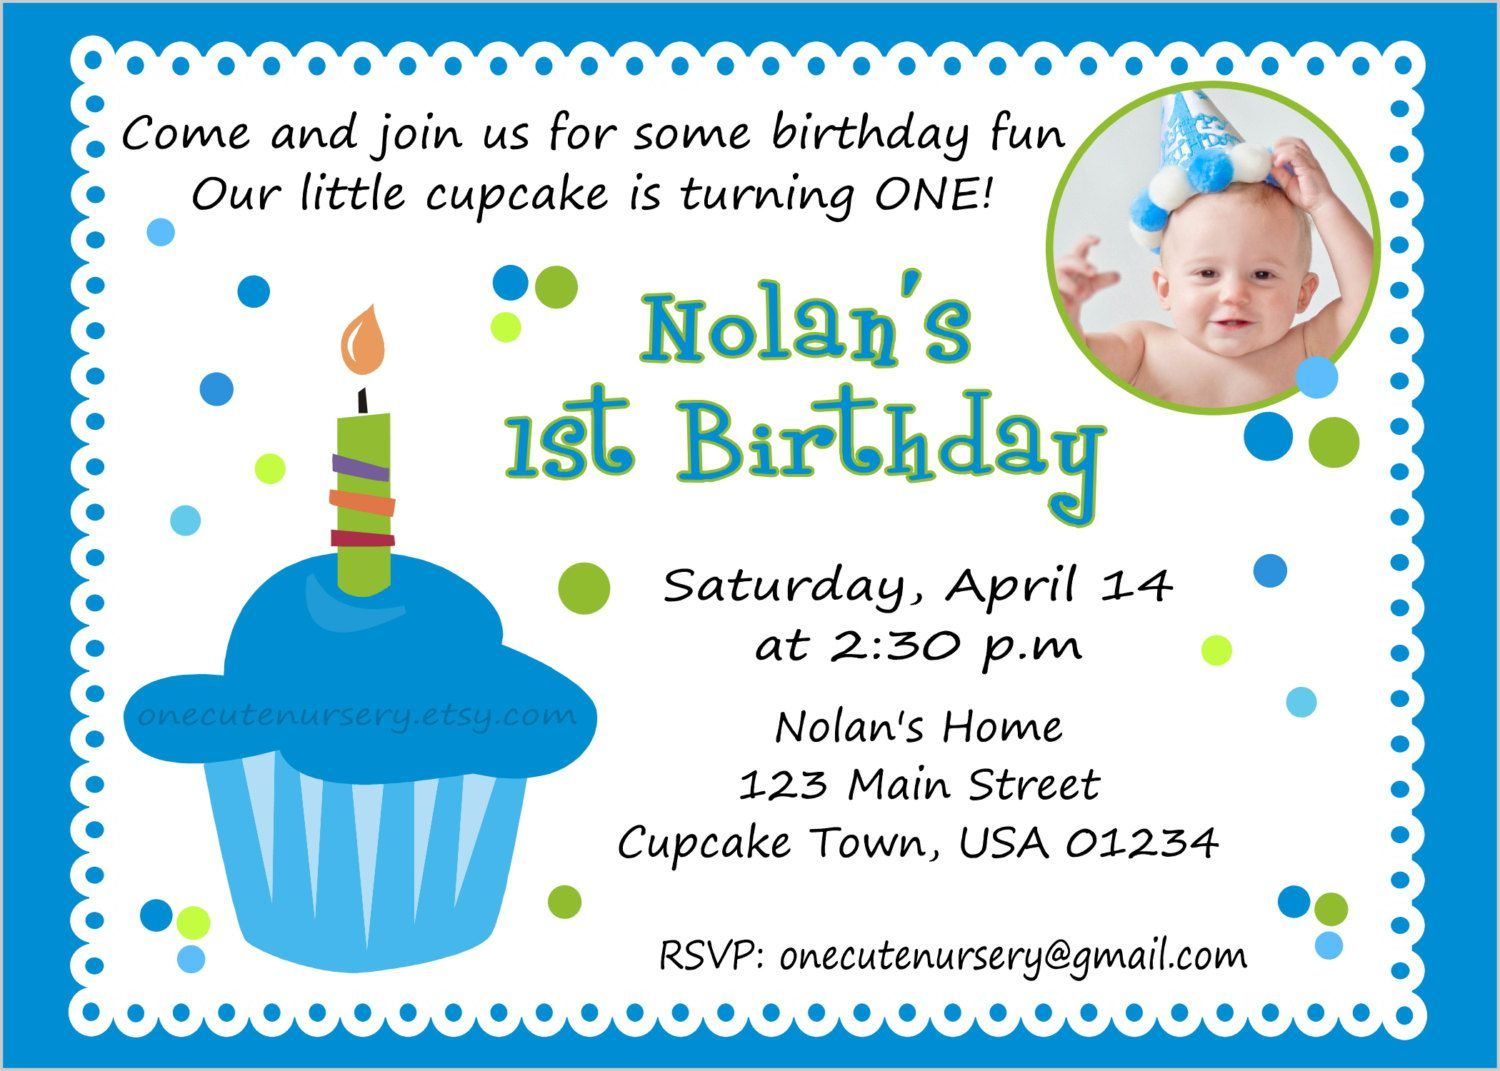 7th birthday invitation wording boy | birthday invitations template ...